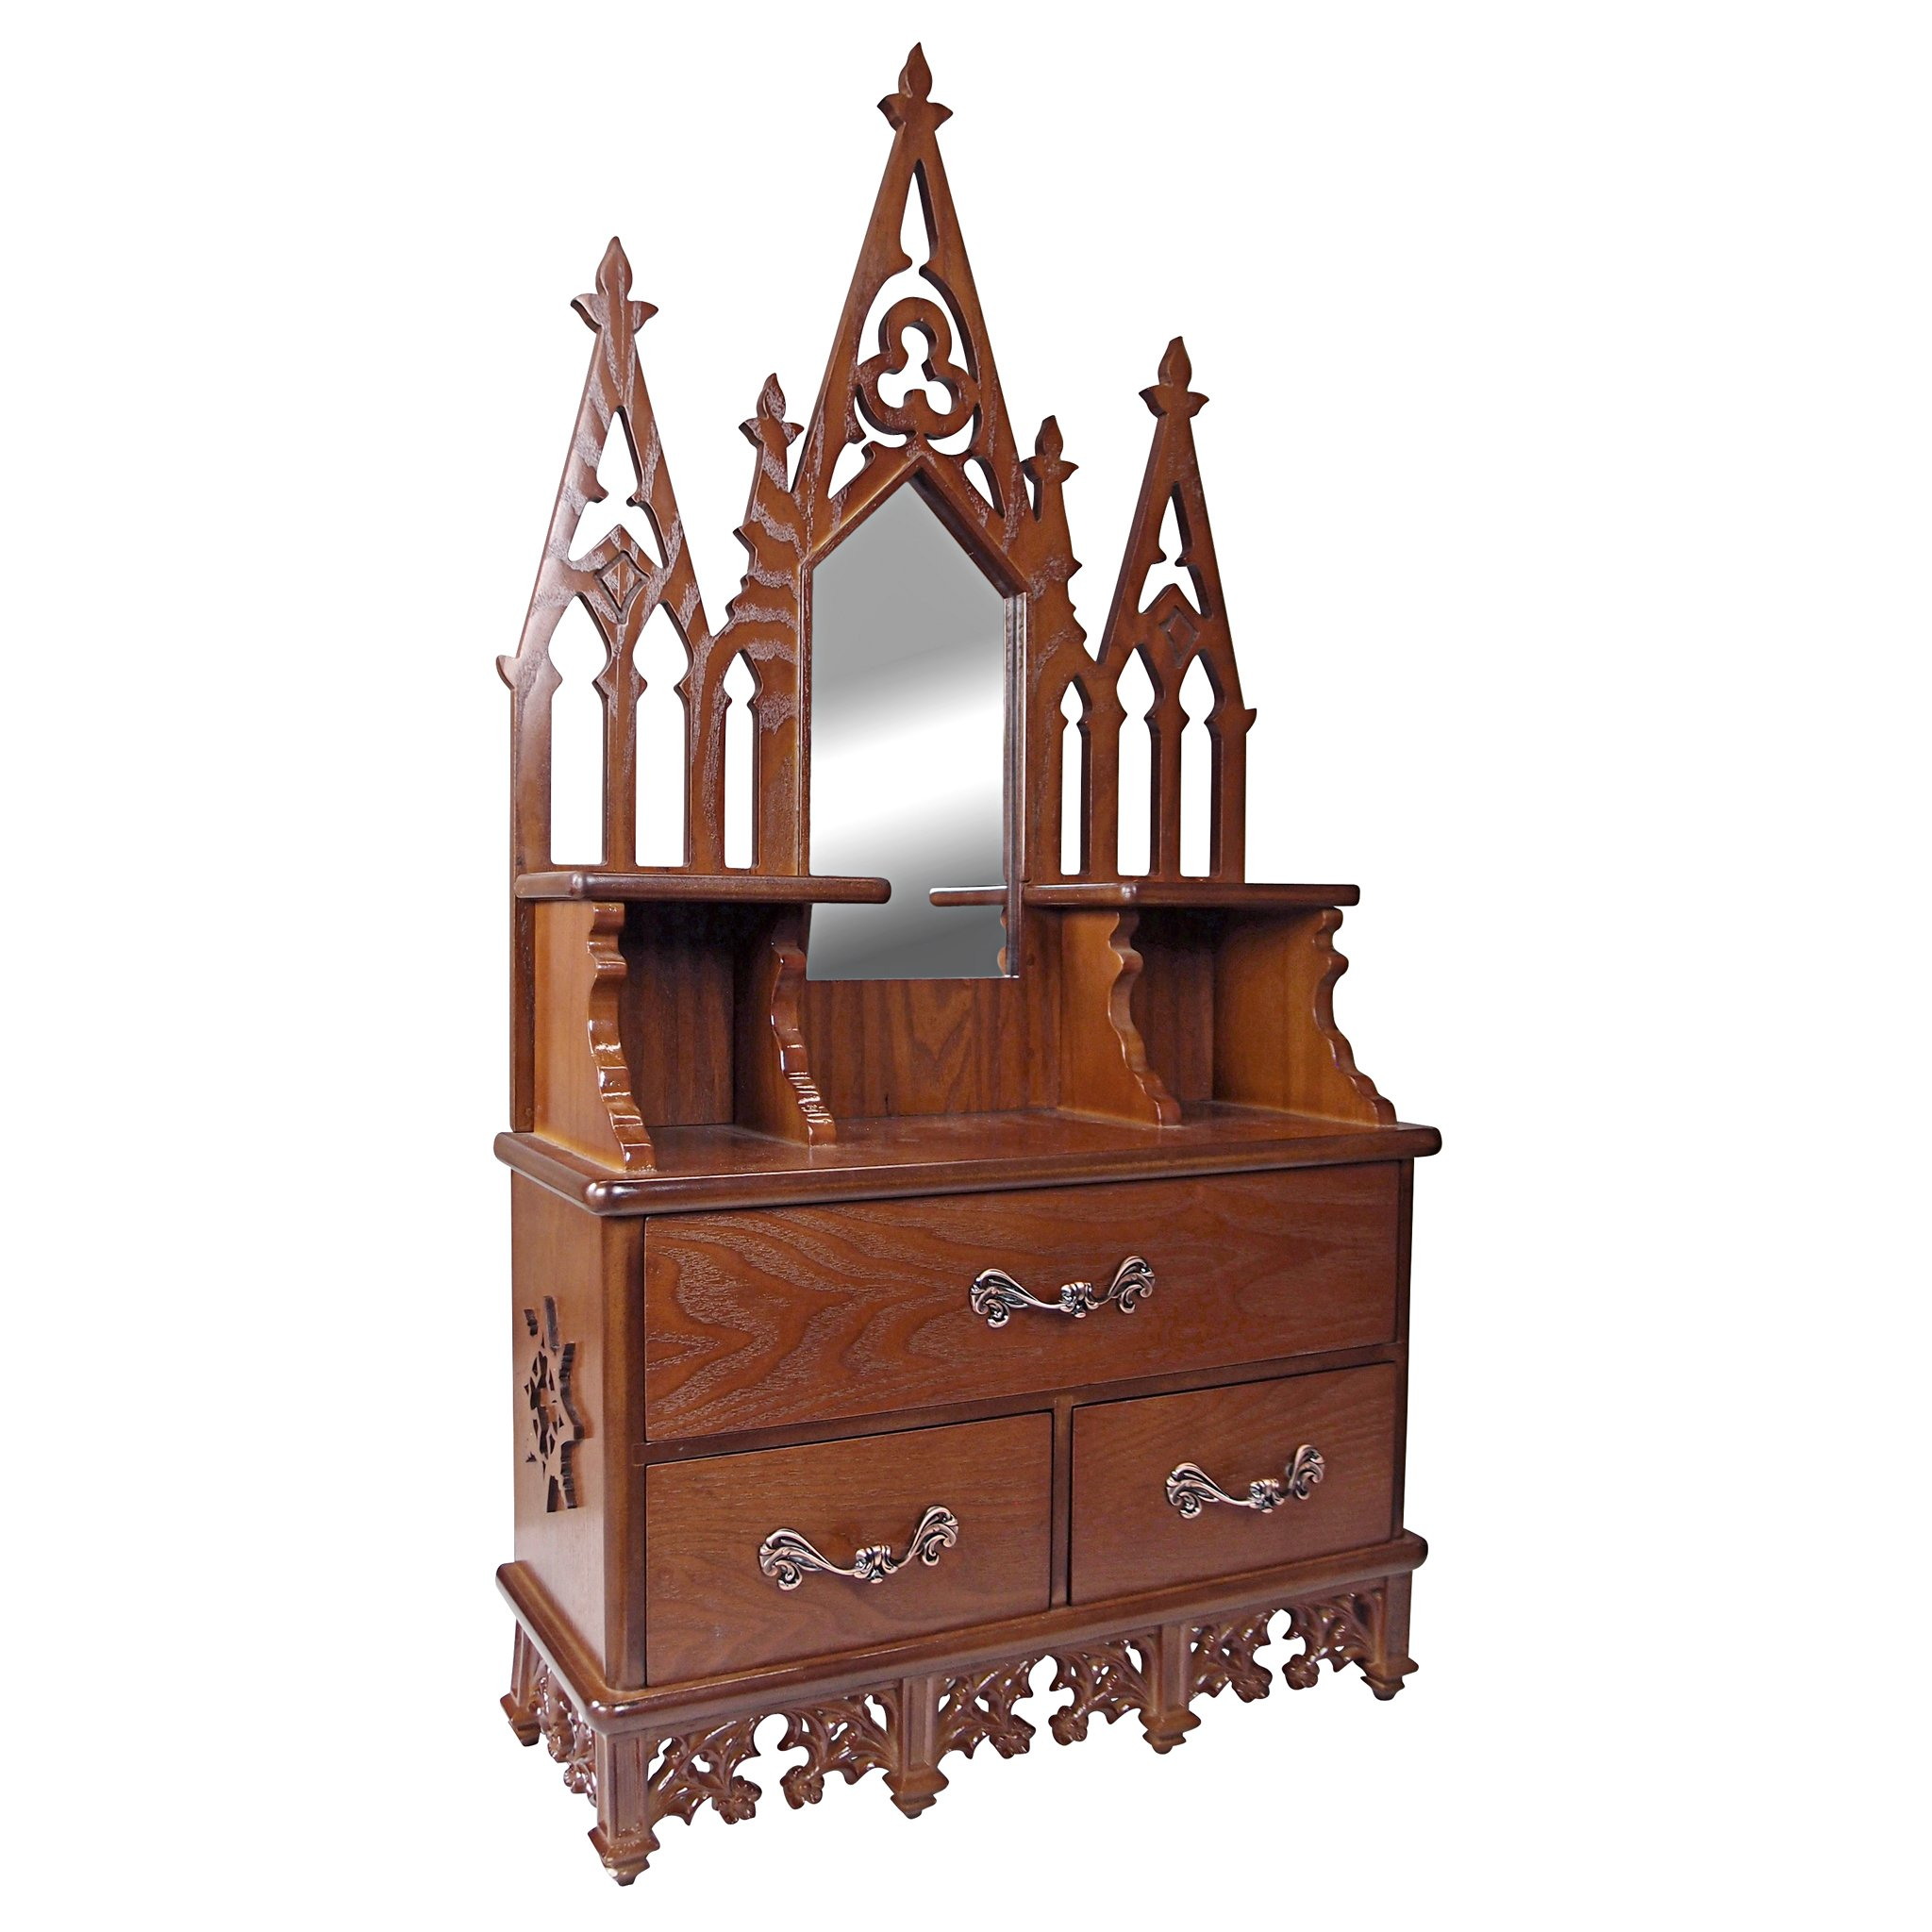 Display Cabinet - Claremont Manor - Wall Mounted Curio Cabinet by Design Toscano